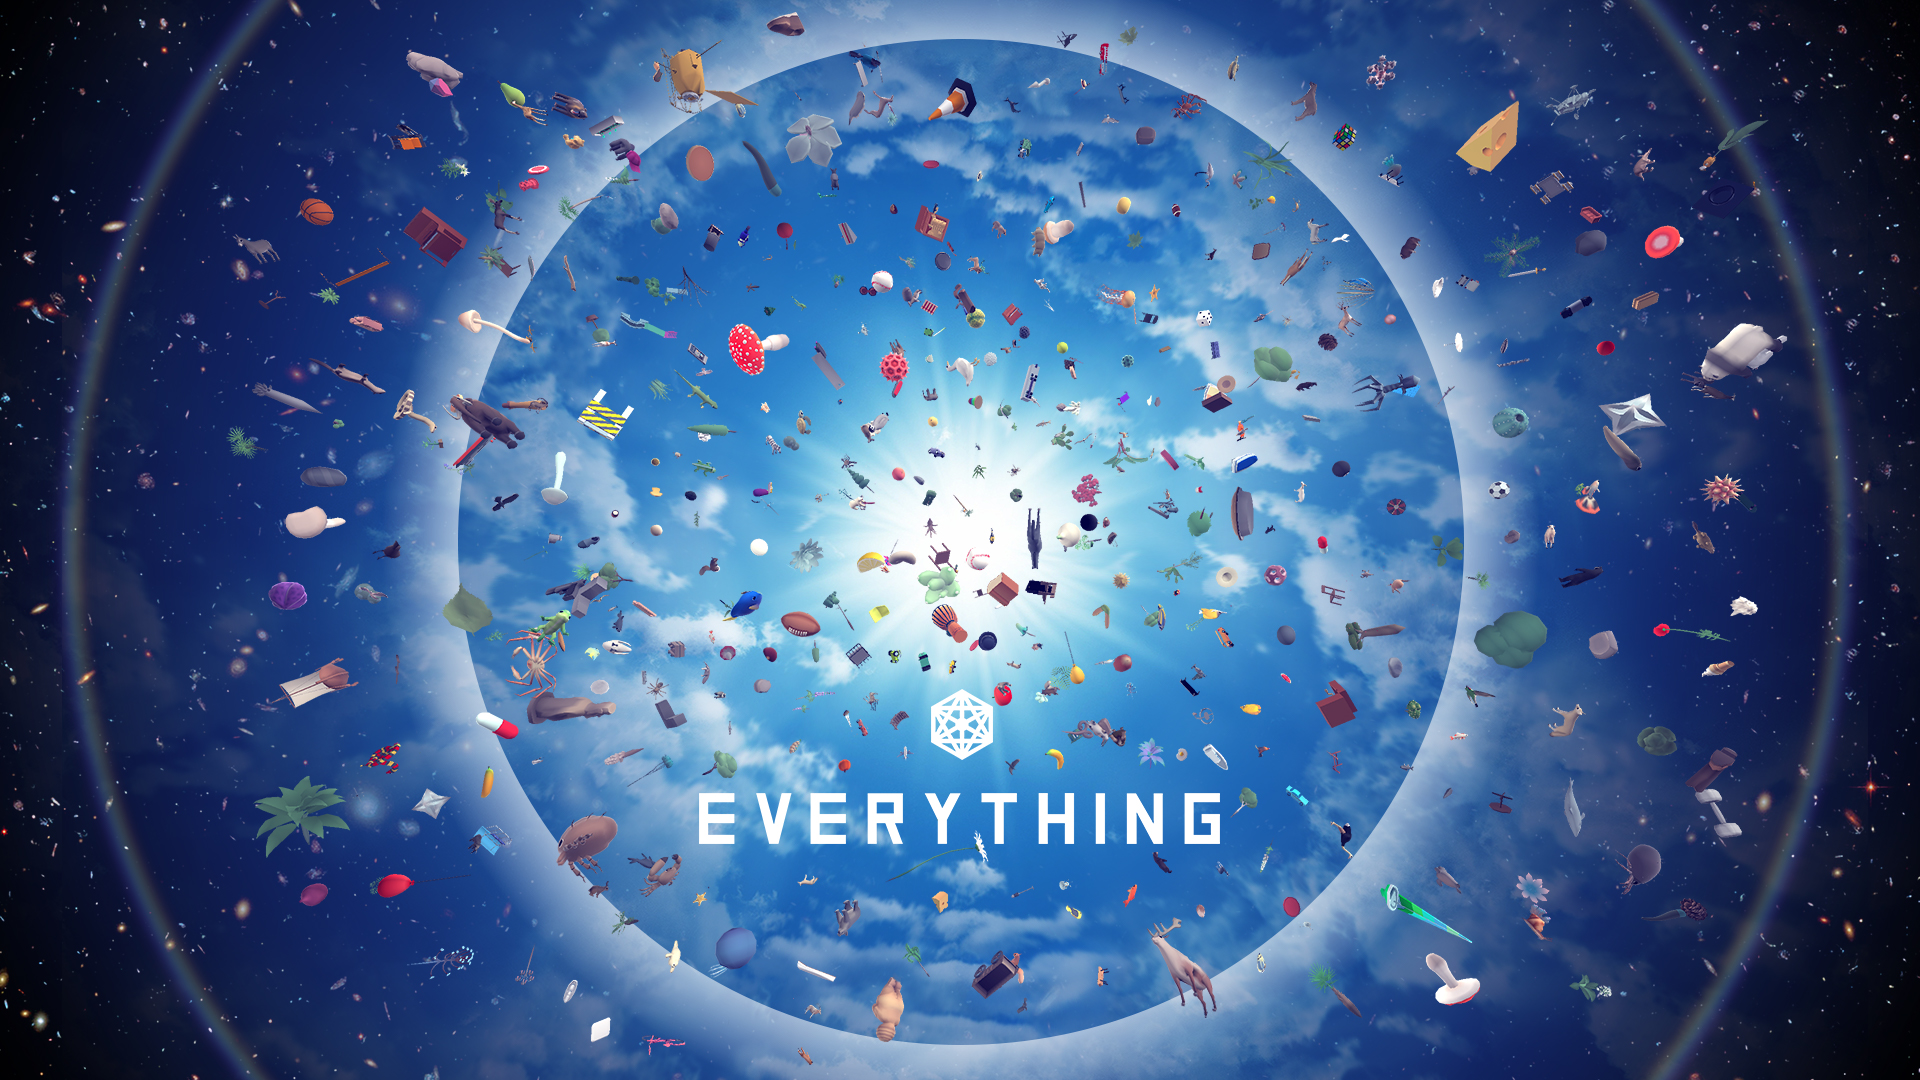 Everything (video game) - Wikipedia